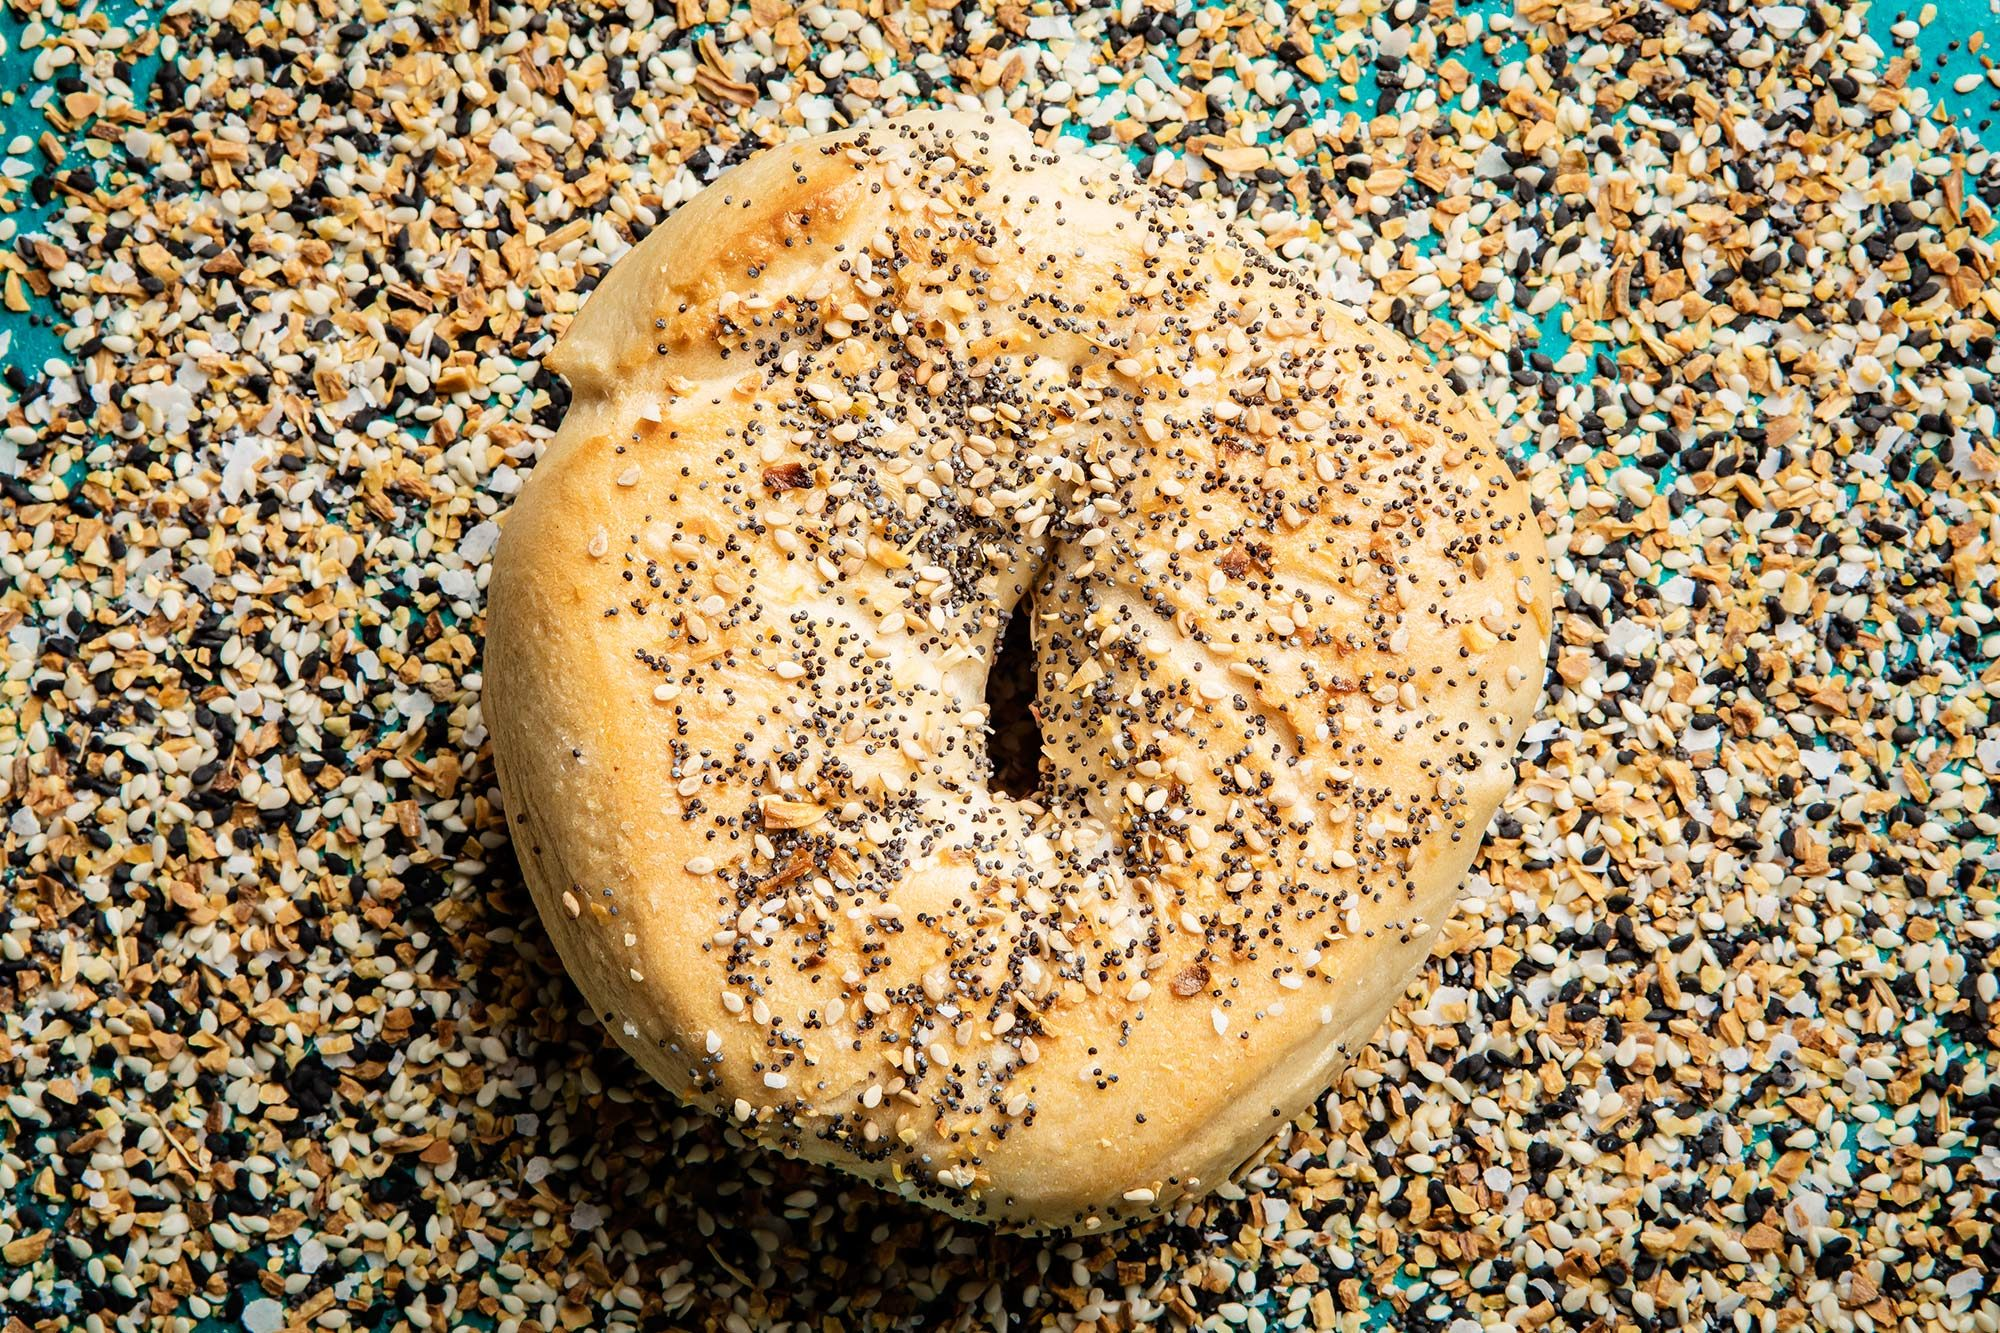 Article-History-Everything-Bagel-Spice-Blend-Trader-Joes